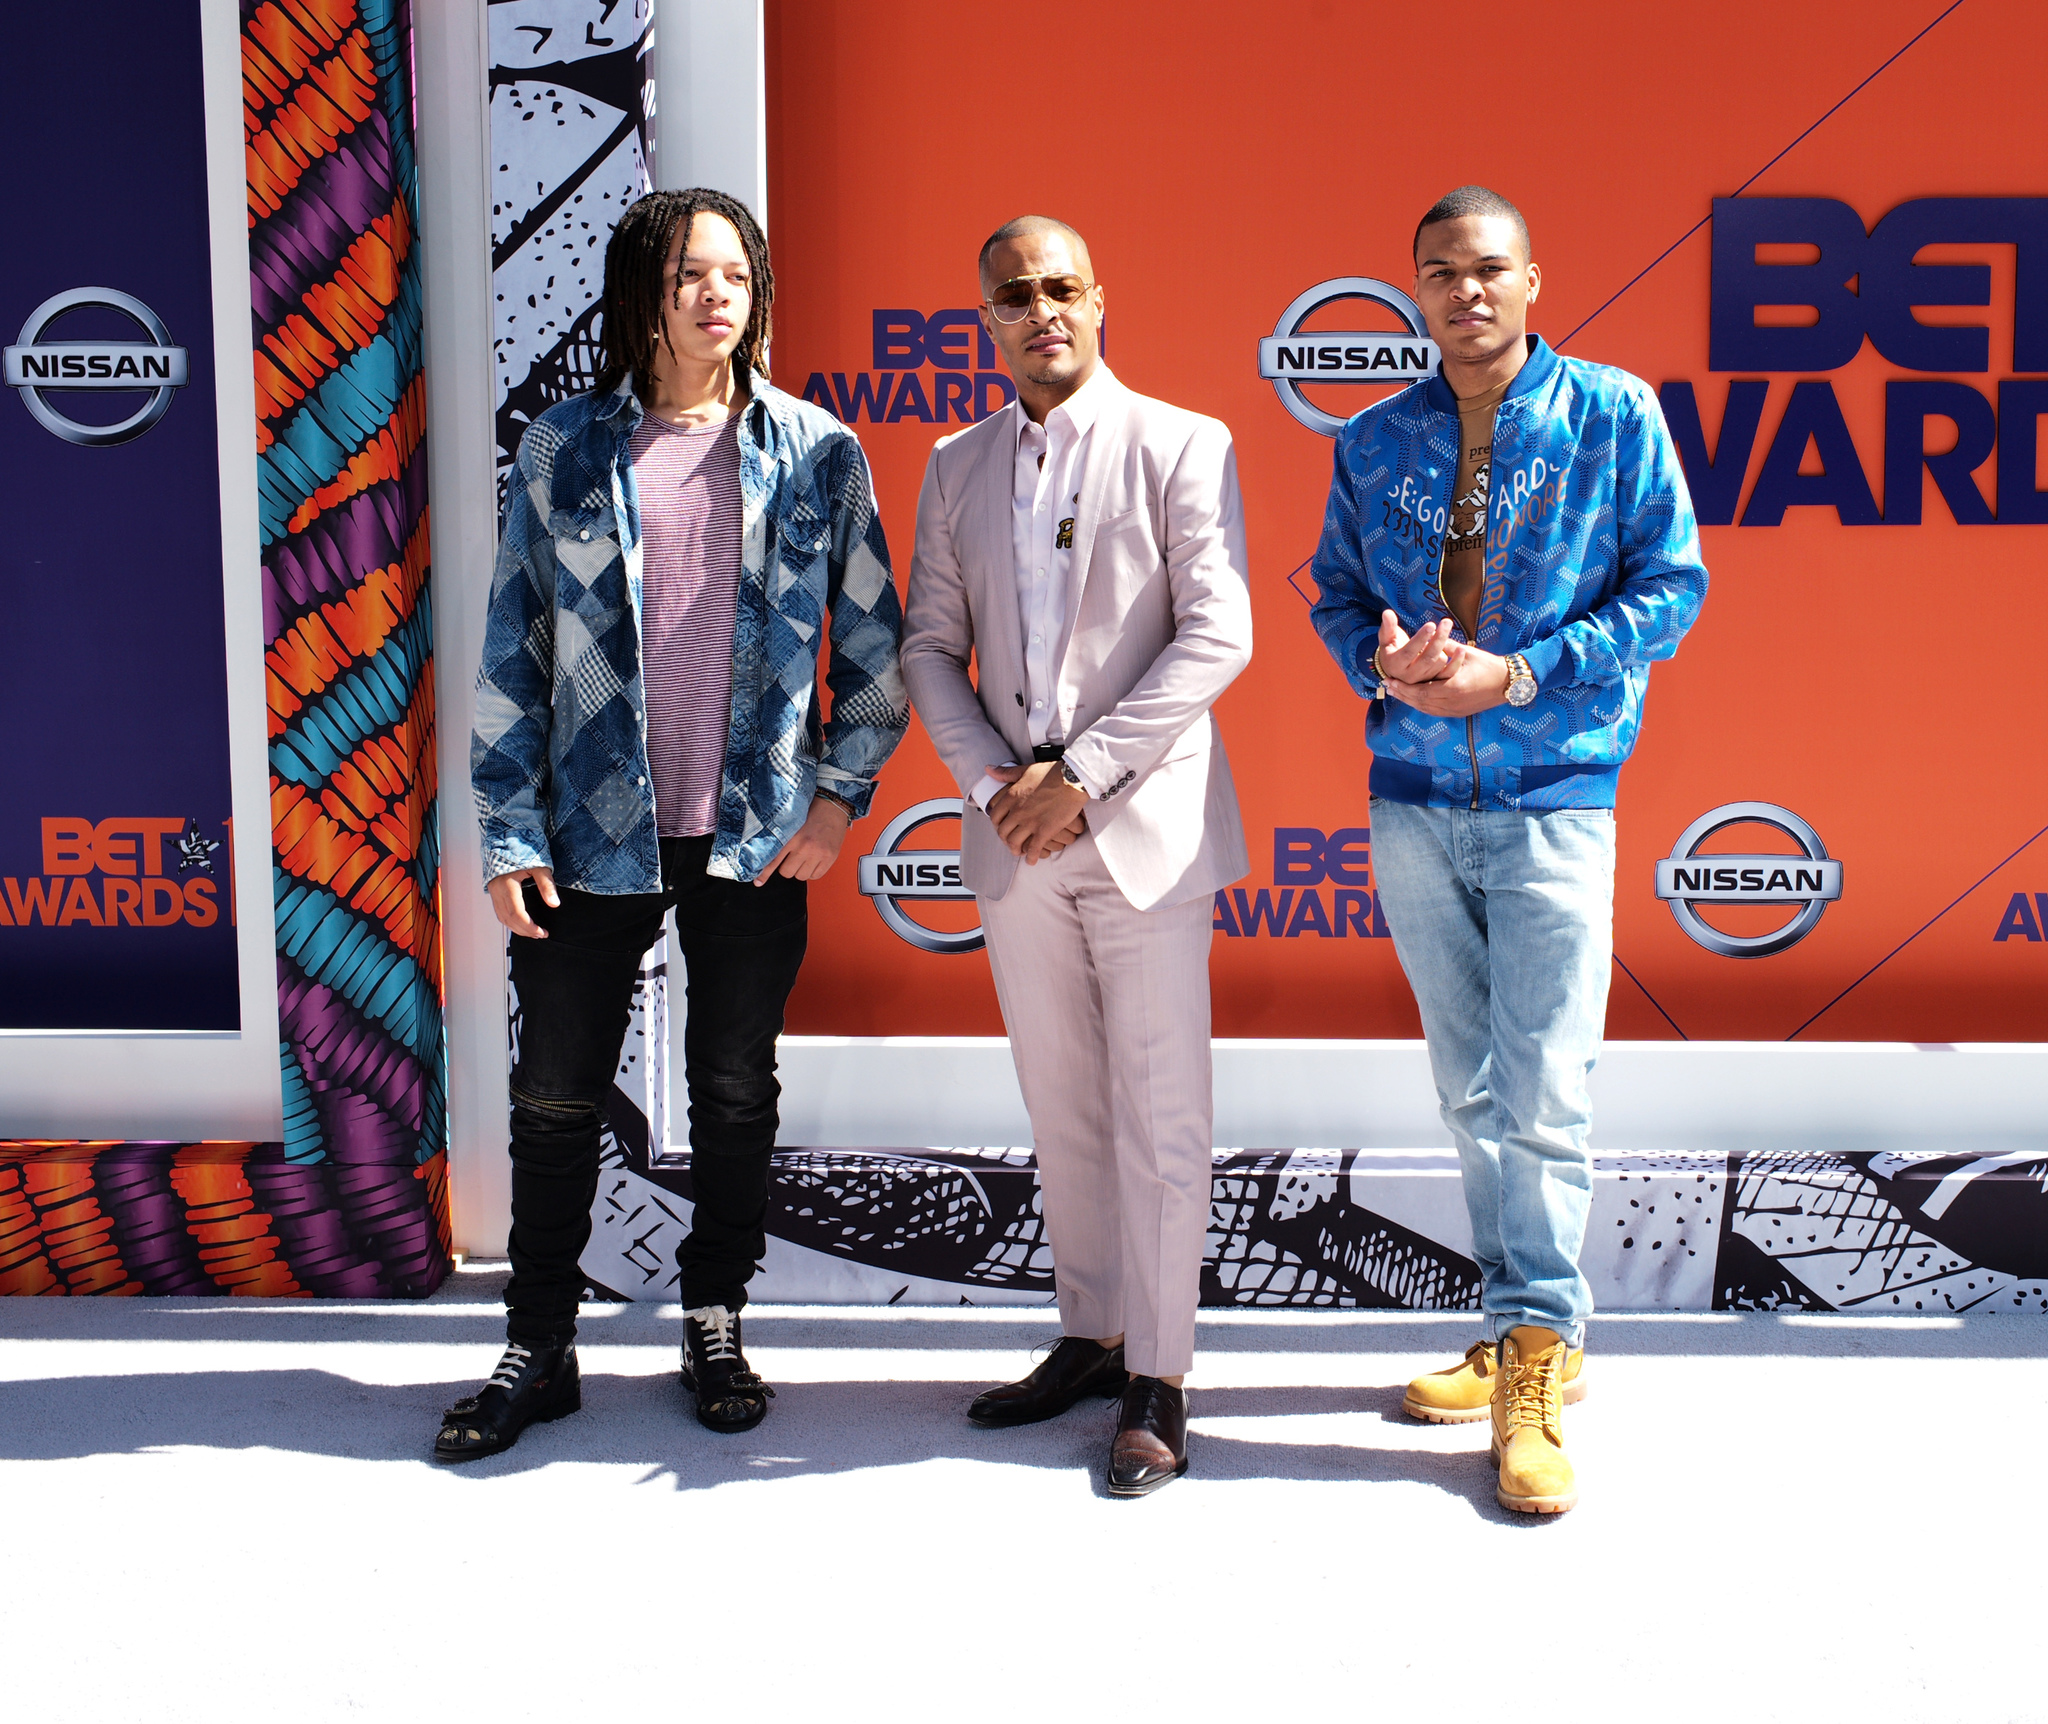 T.I., Messiah Harris, and Domani Harris at an event for BET Awards 2018 (2018)